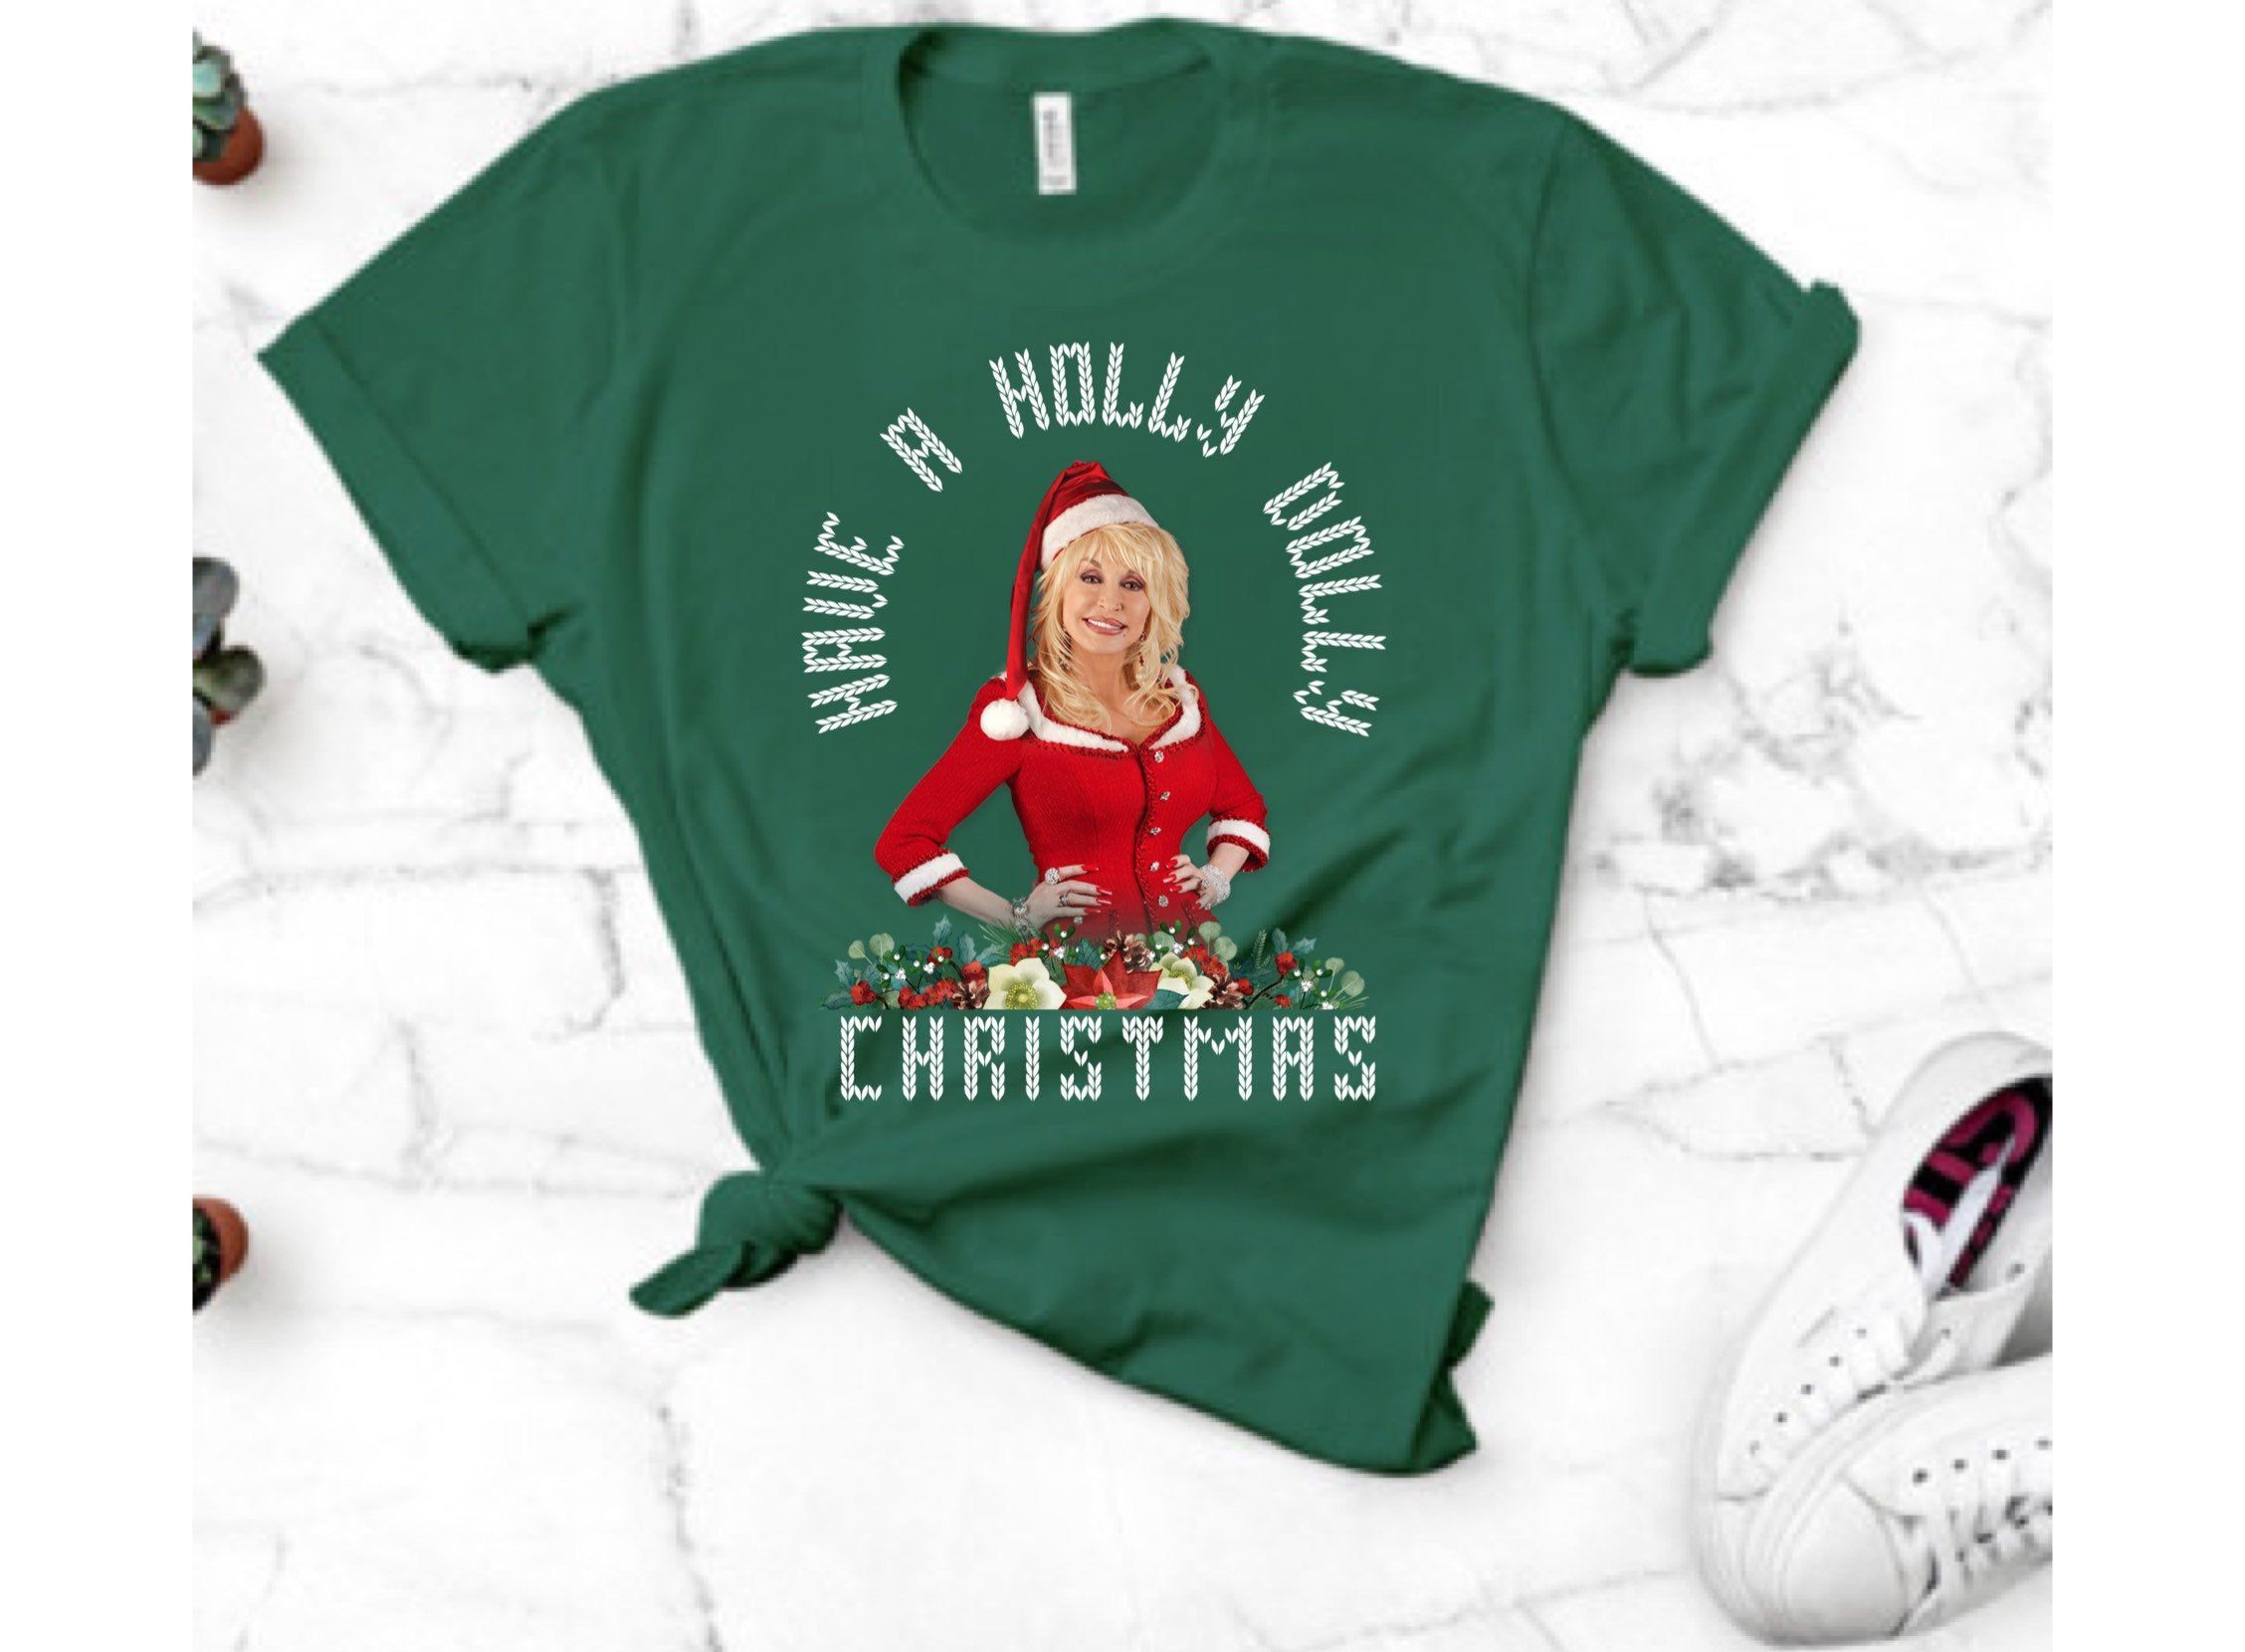 Have A Holly Dolly Christmas Sweatshirt Holly dolly